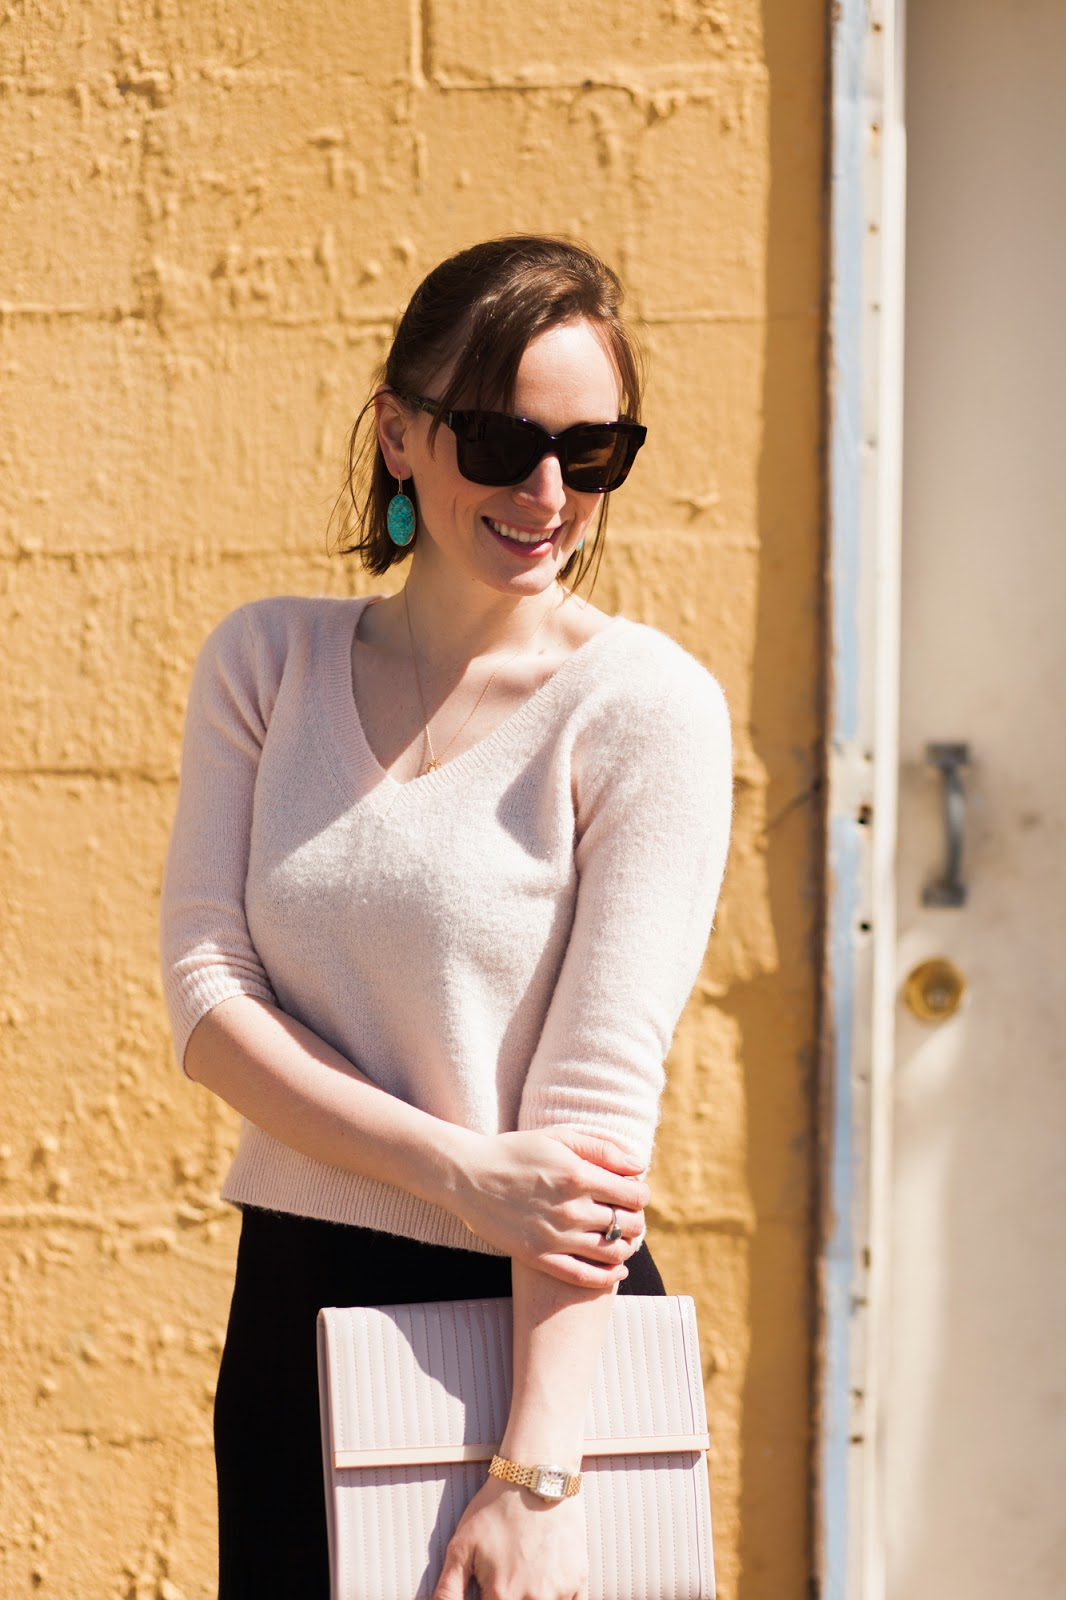 Pastels for Spring, Maria Beaulieu Jewelry, Stella McCartney Sunglasses, Dittos